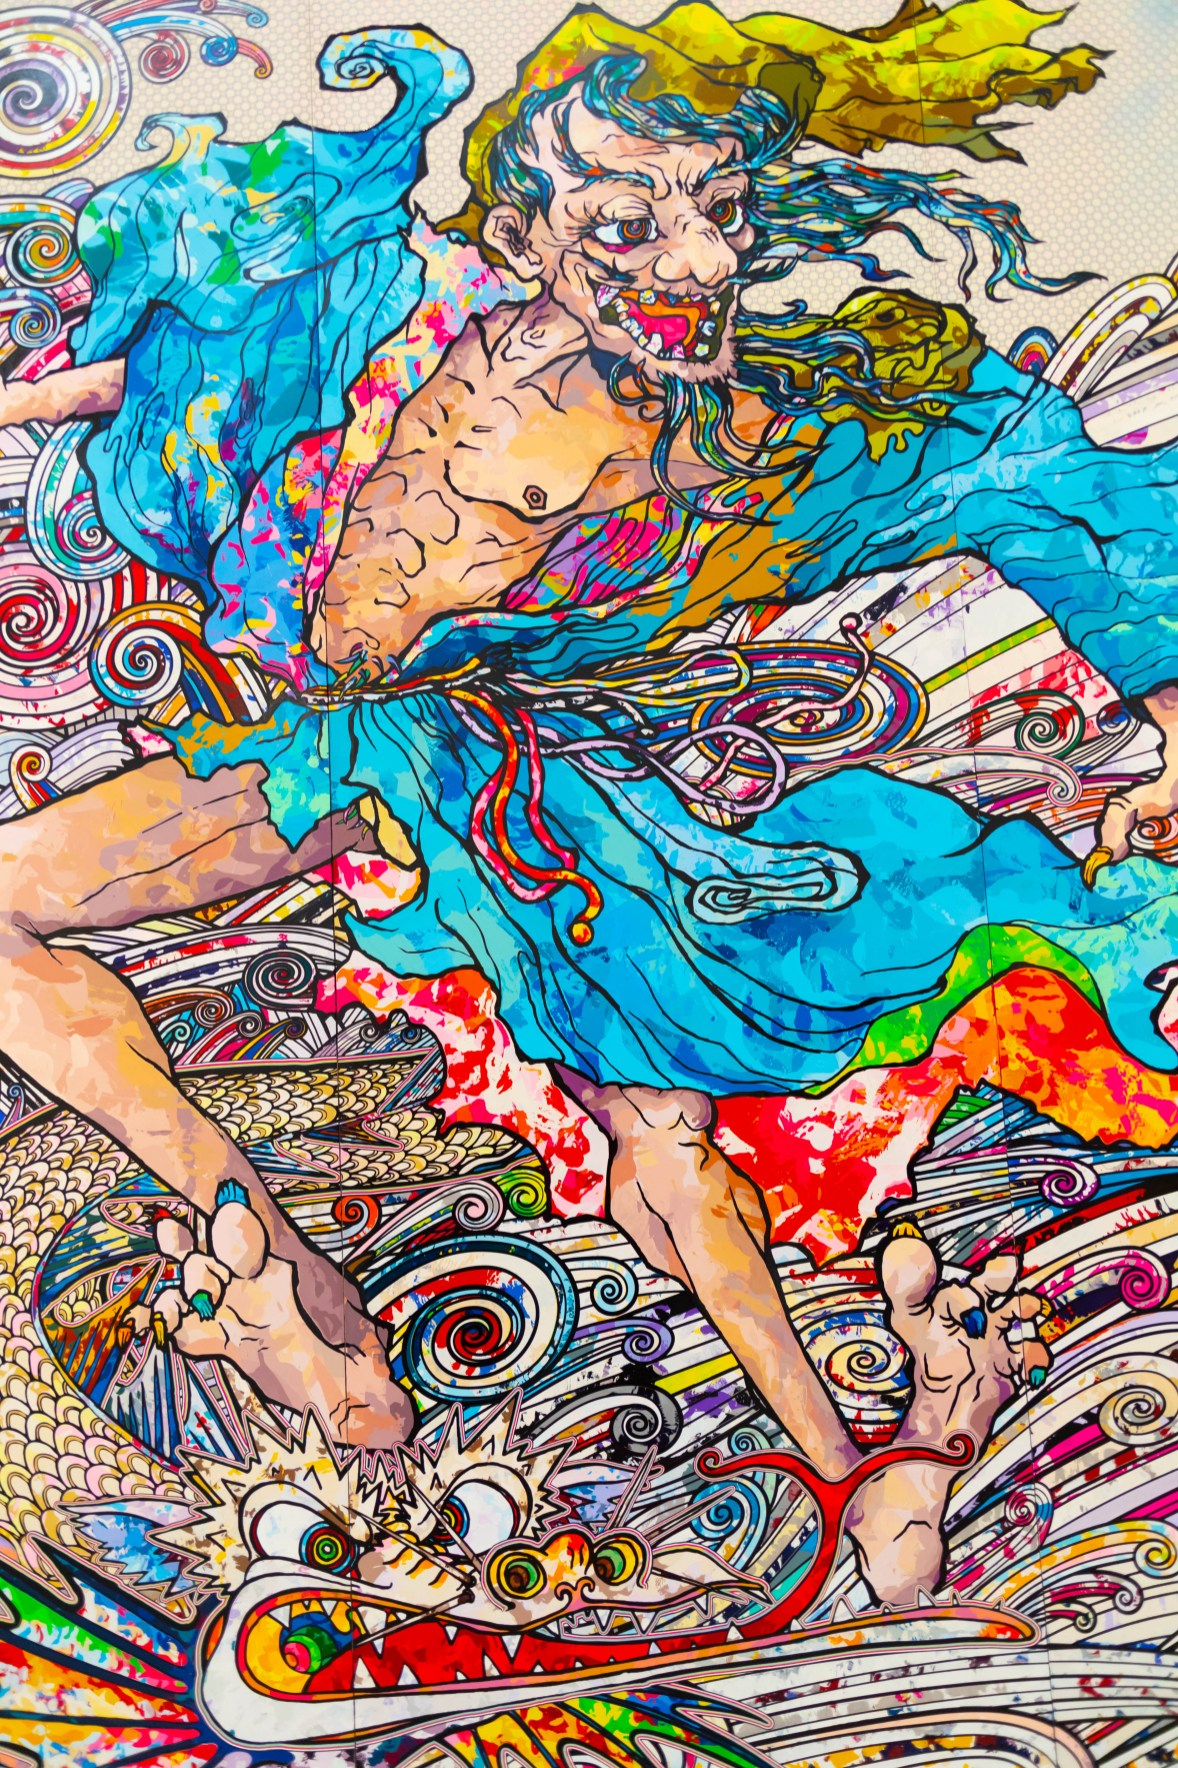 In the Land of the Dead, Stepping on the Tail of a Rainbow by Takashi Murakami at The Broad Art Museum in Los Angeles